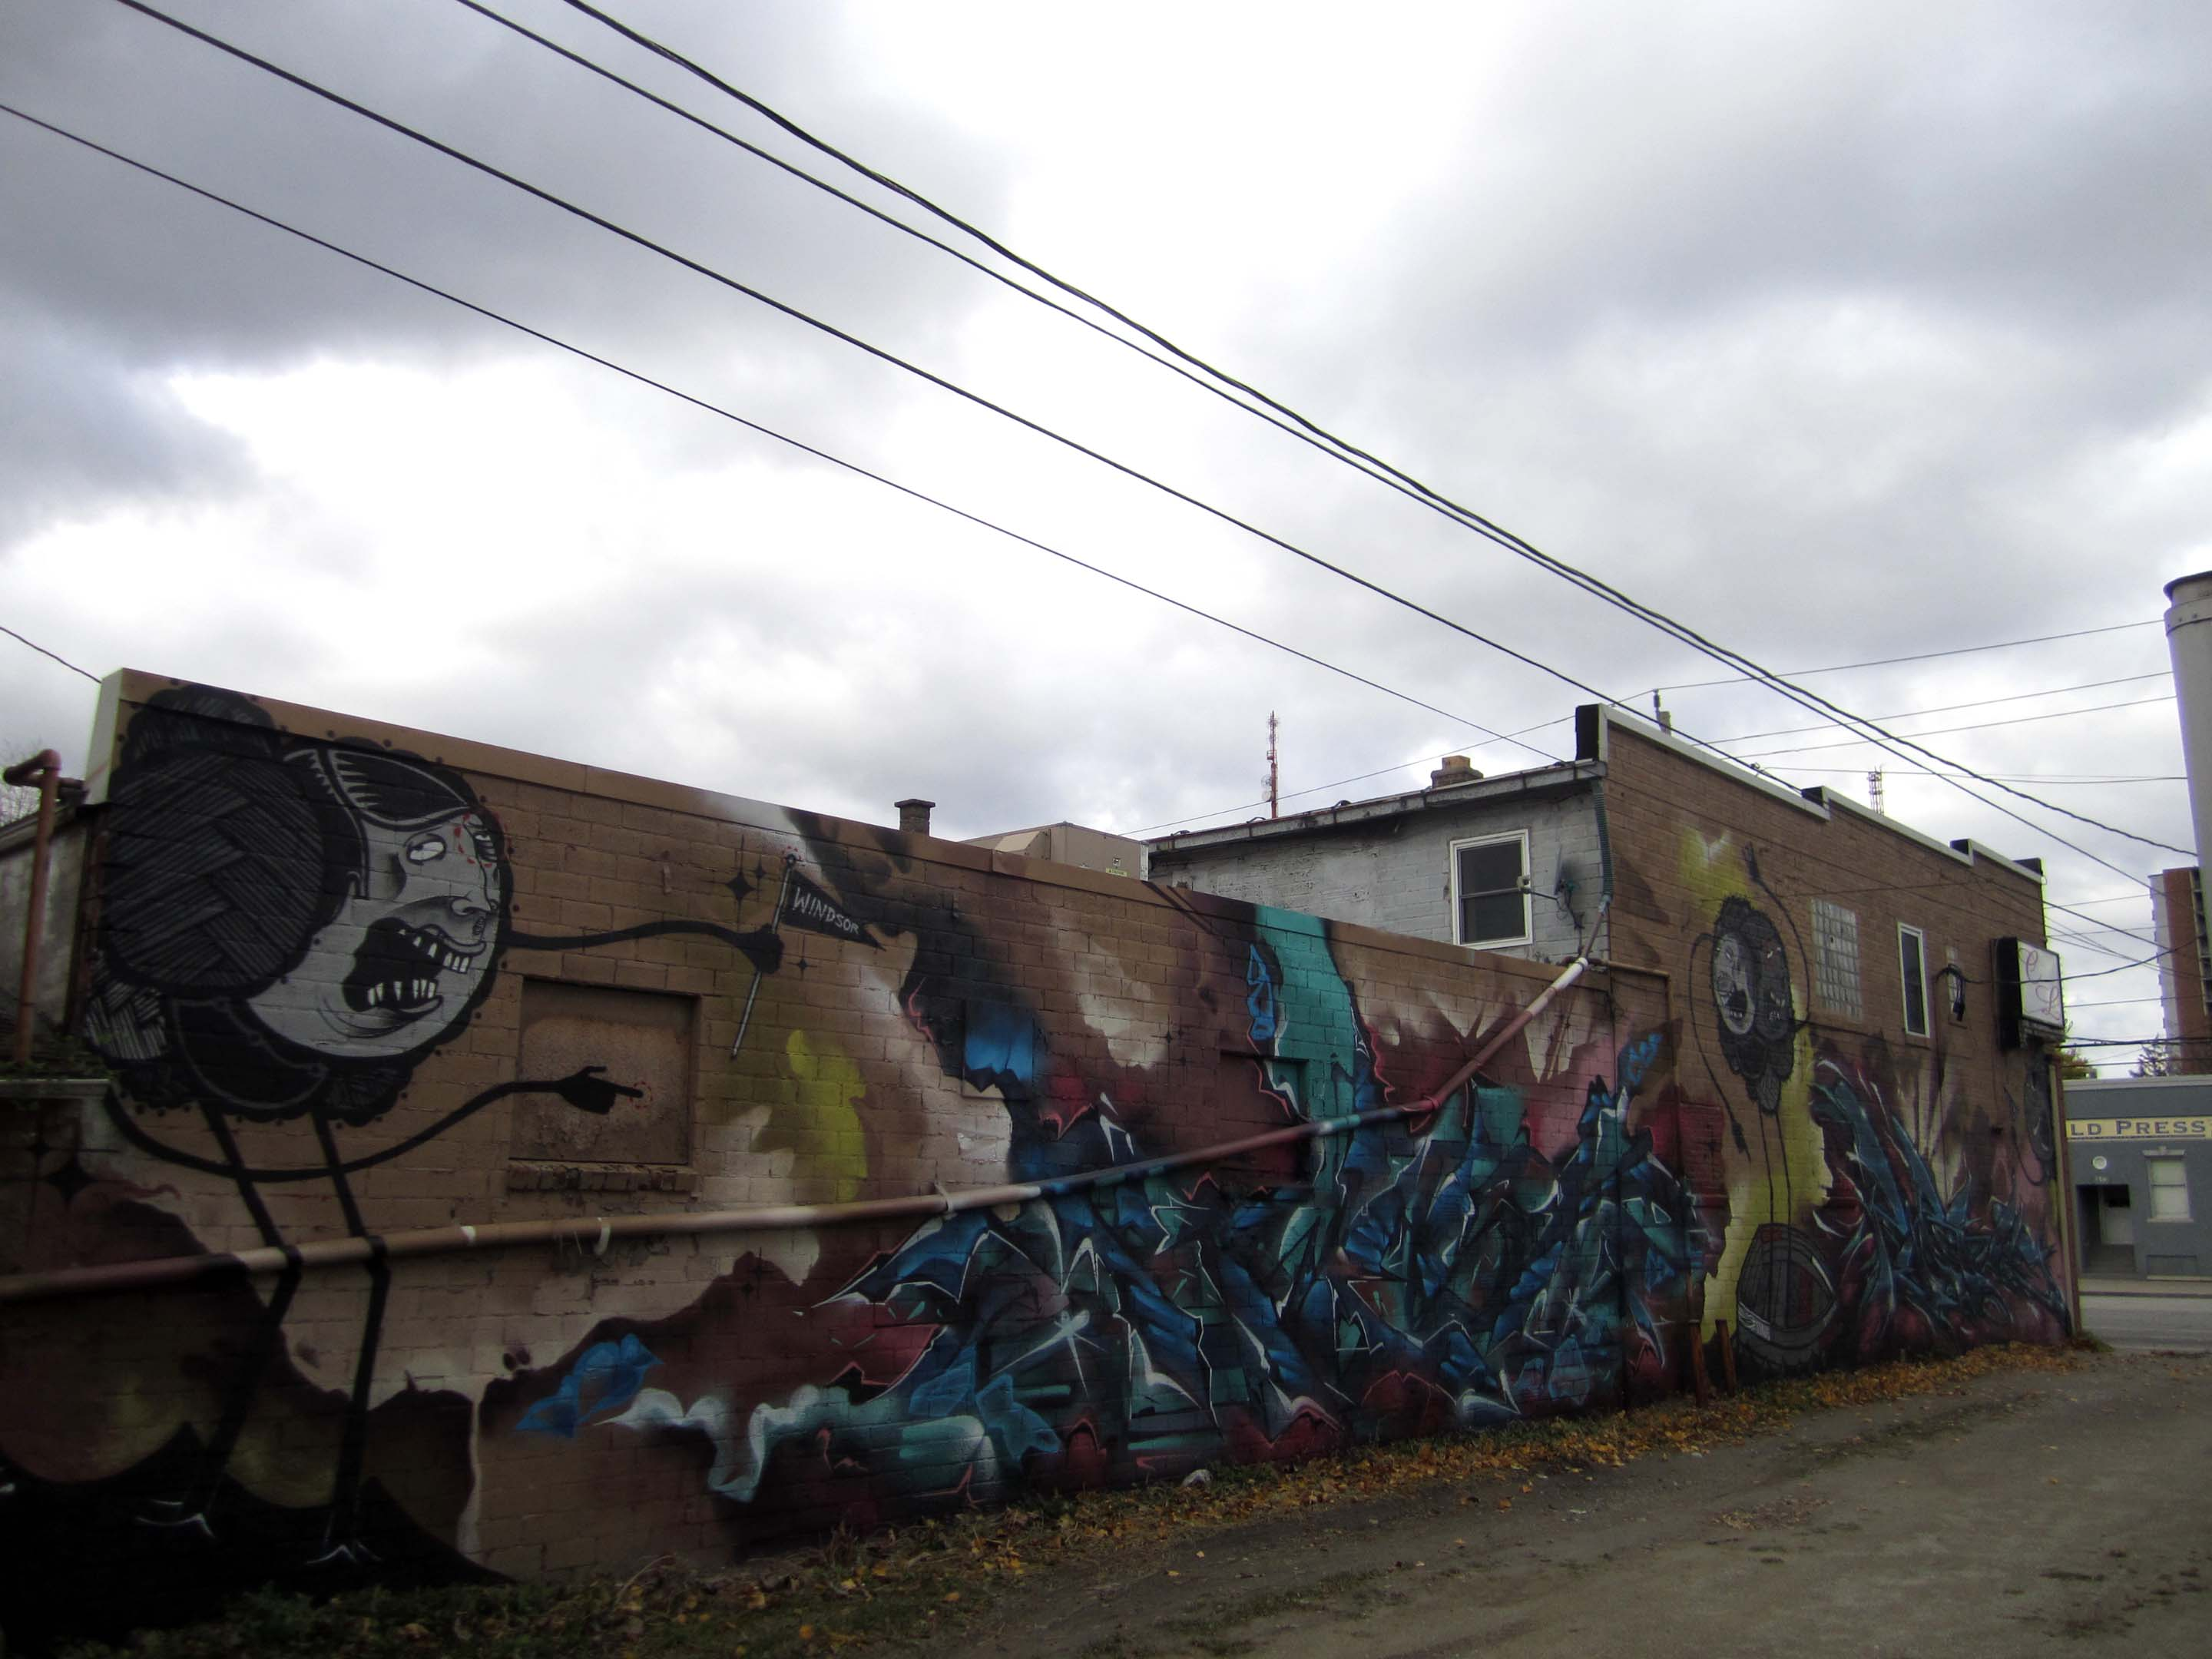 Free 4 All Walls in Windsor, Ontario: Kwest Persue Nekoes 1.jpg